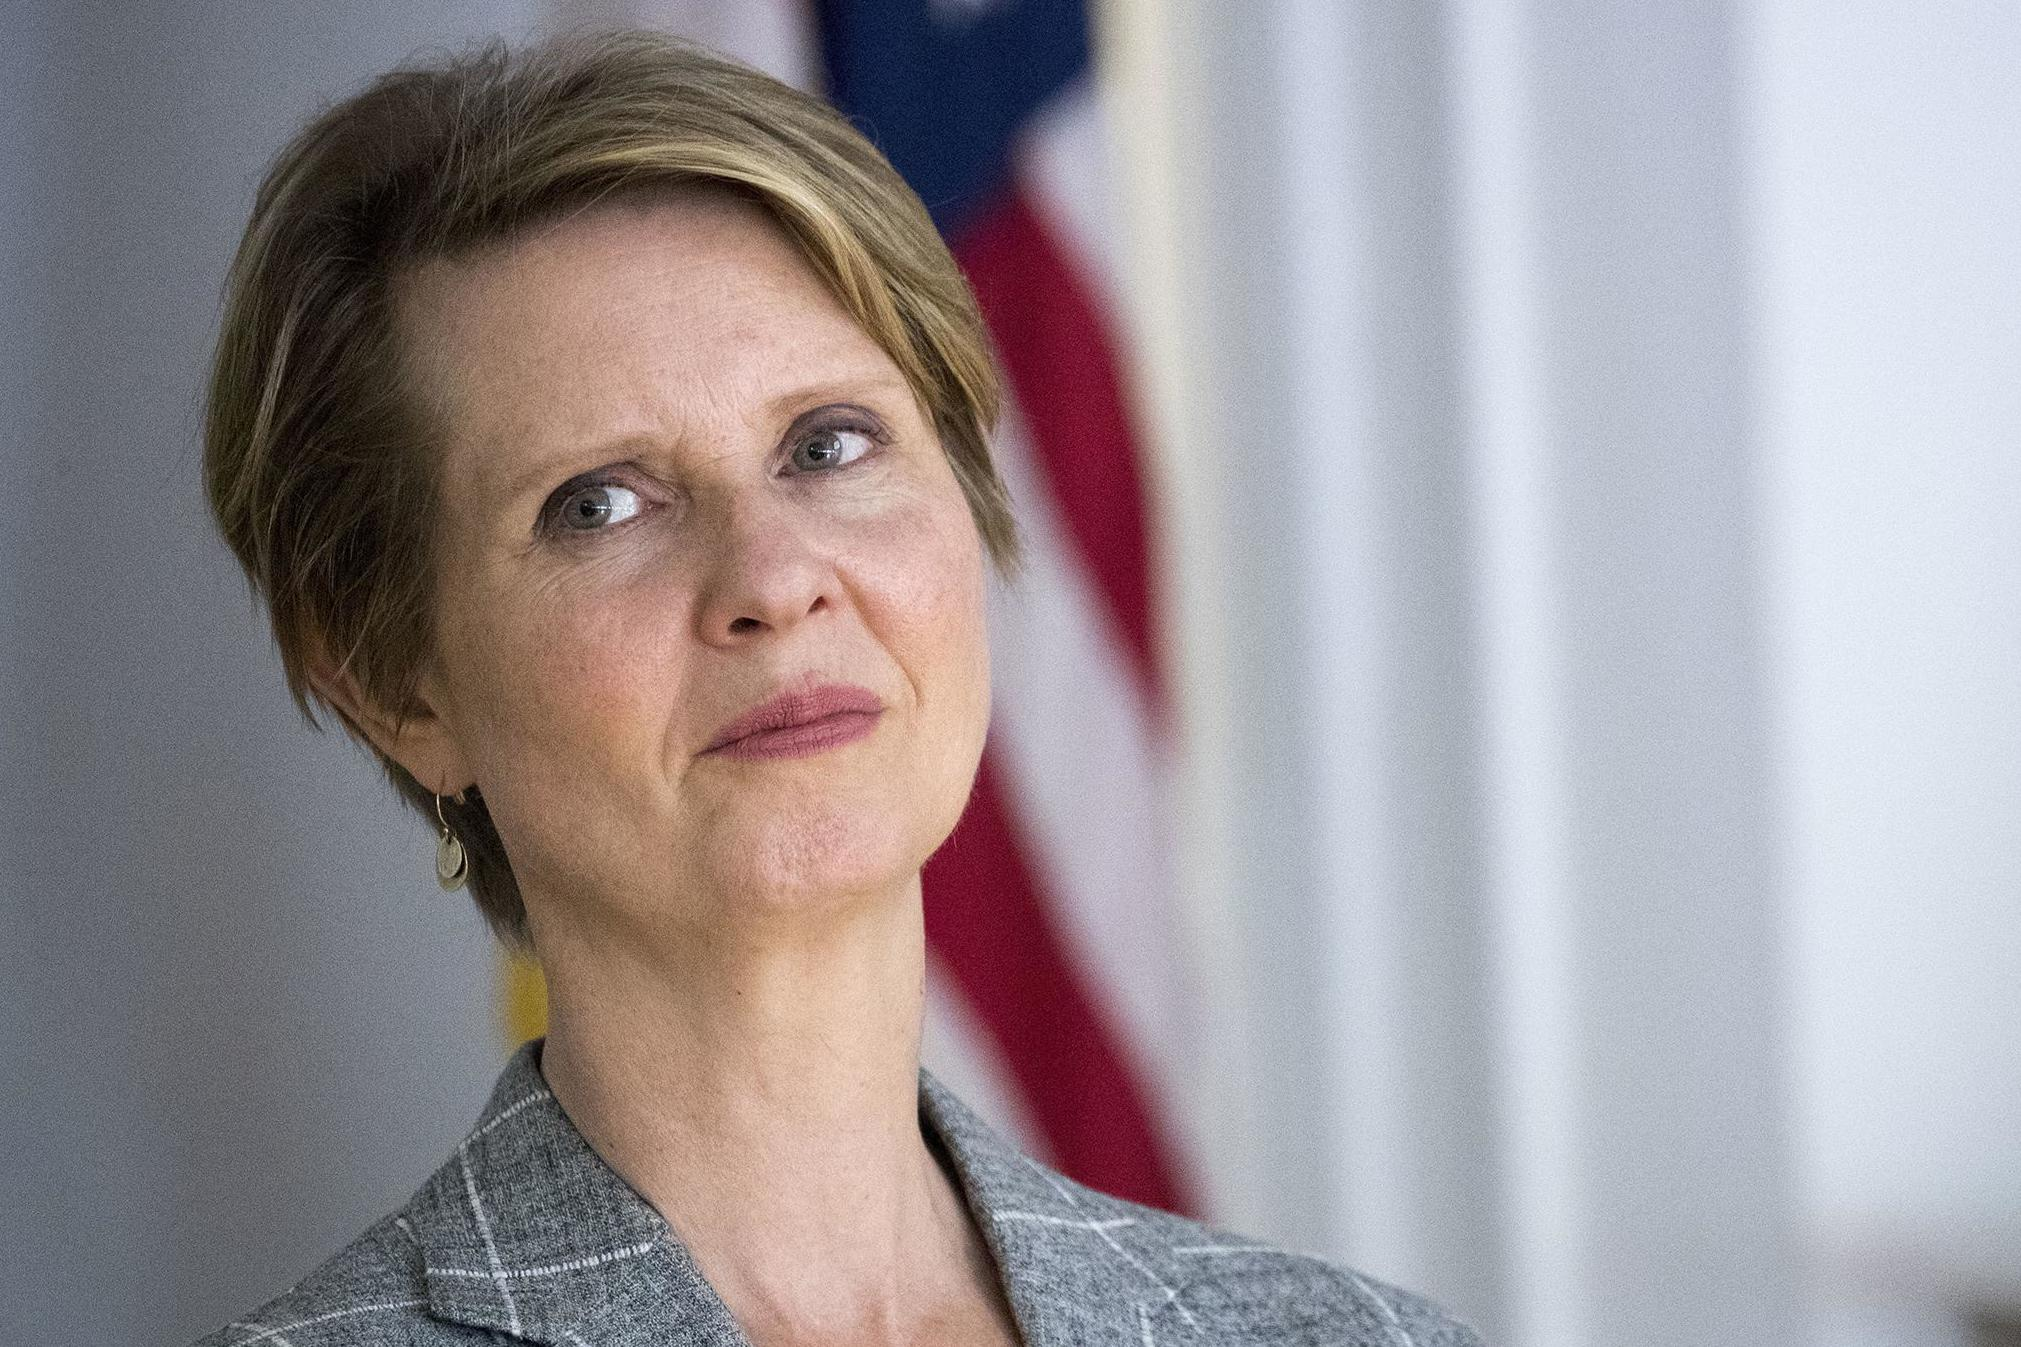 Cynthia Nixon: How the Sex and the City star entered New York politics